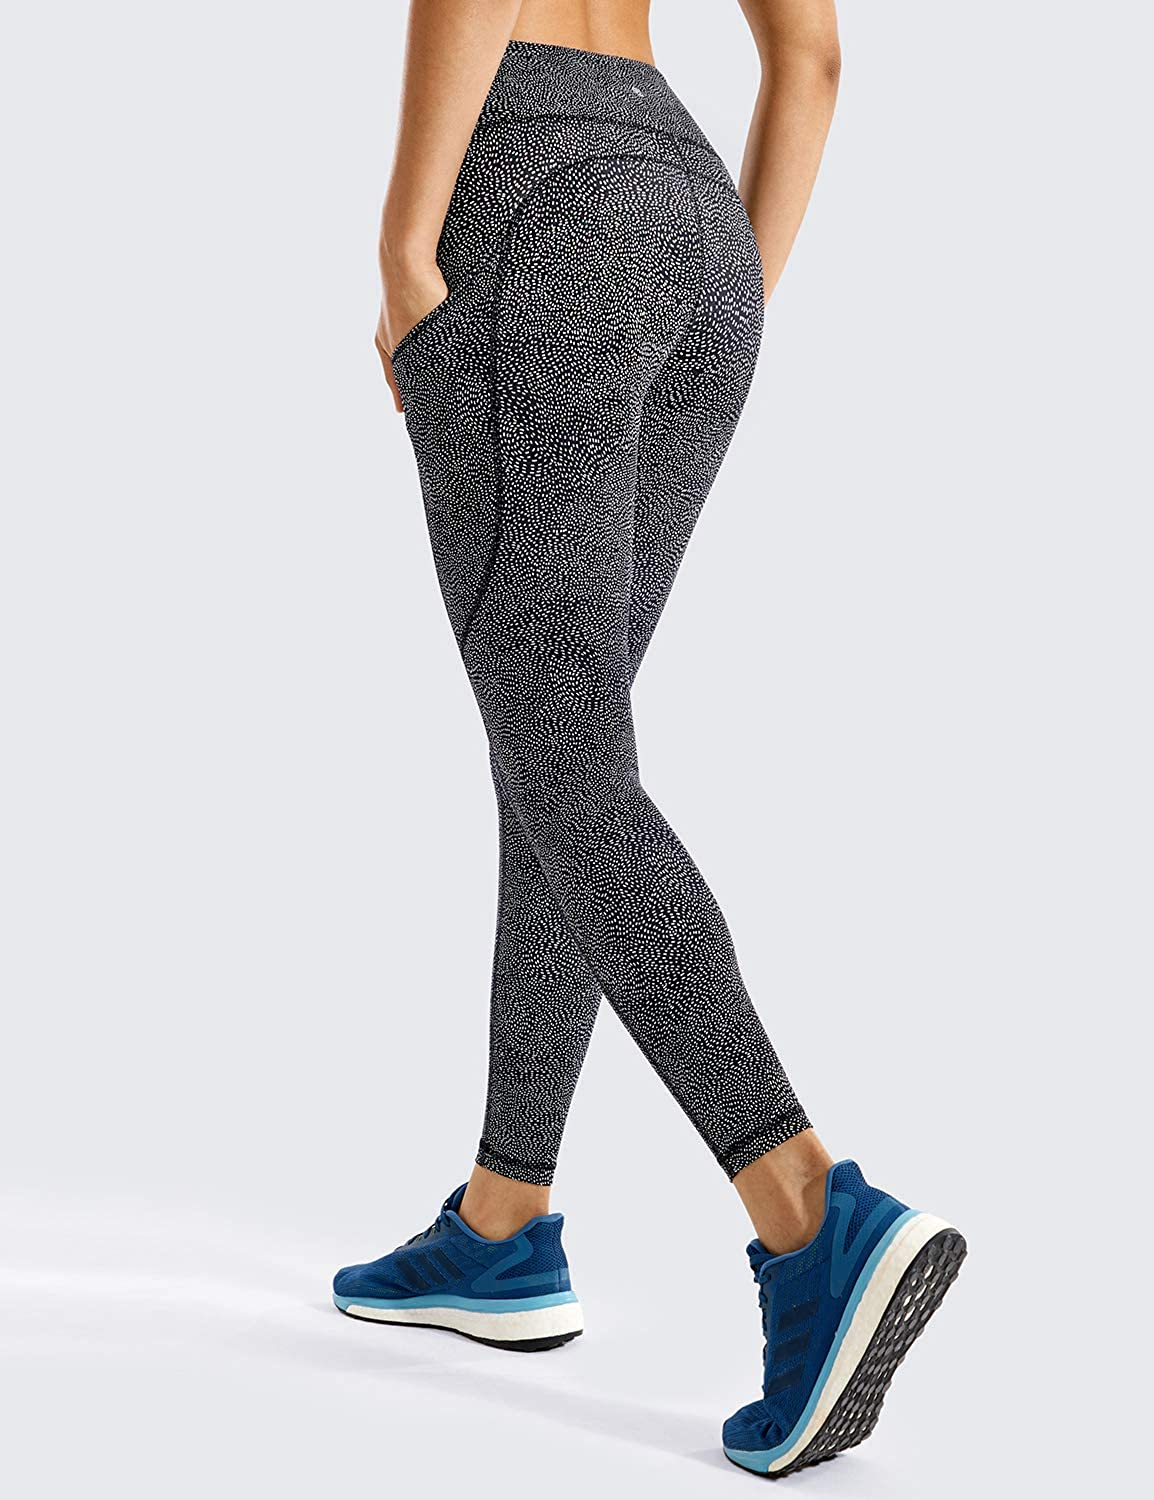 CRZ YOGA Womens Naked Feeling High Waist Out Pocket Stretchy Running Leggings-25 Inches